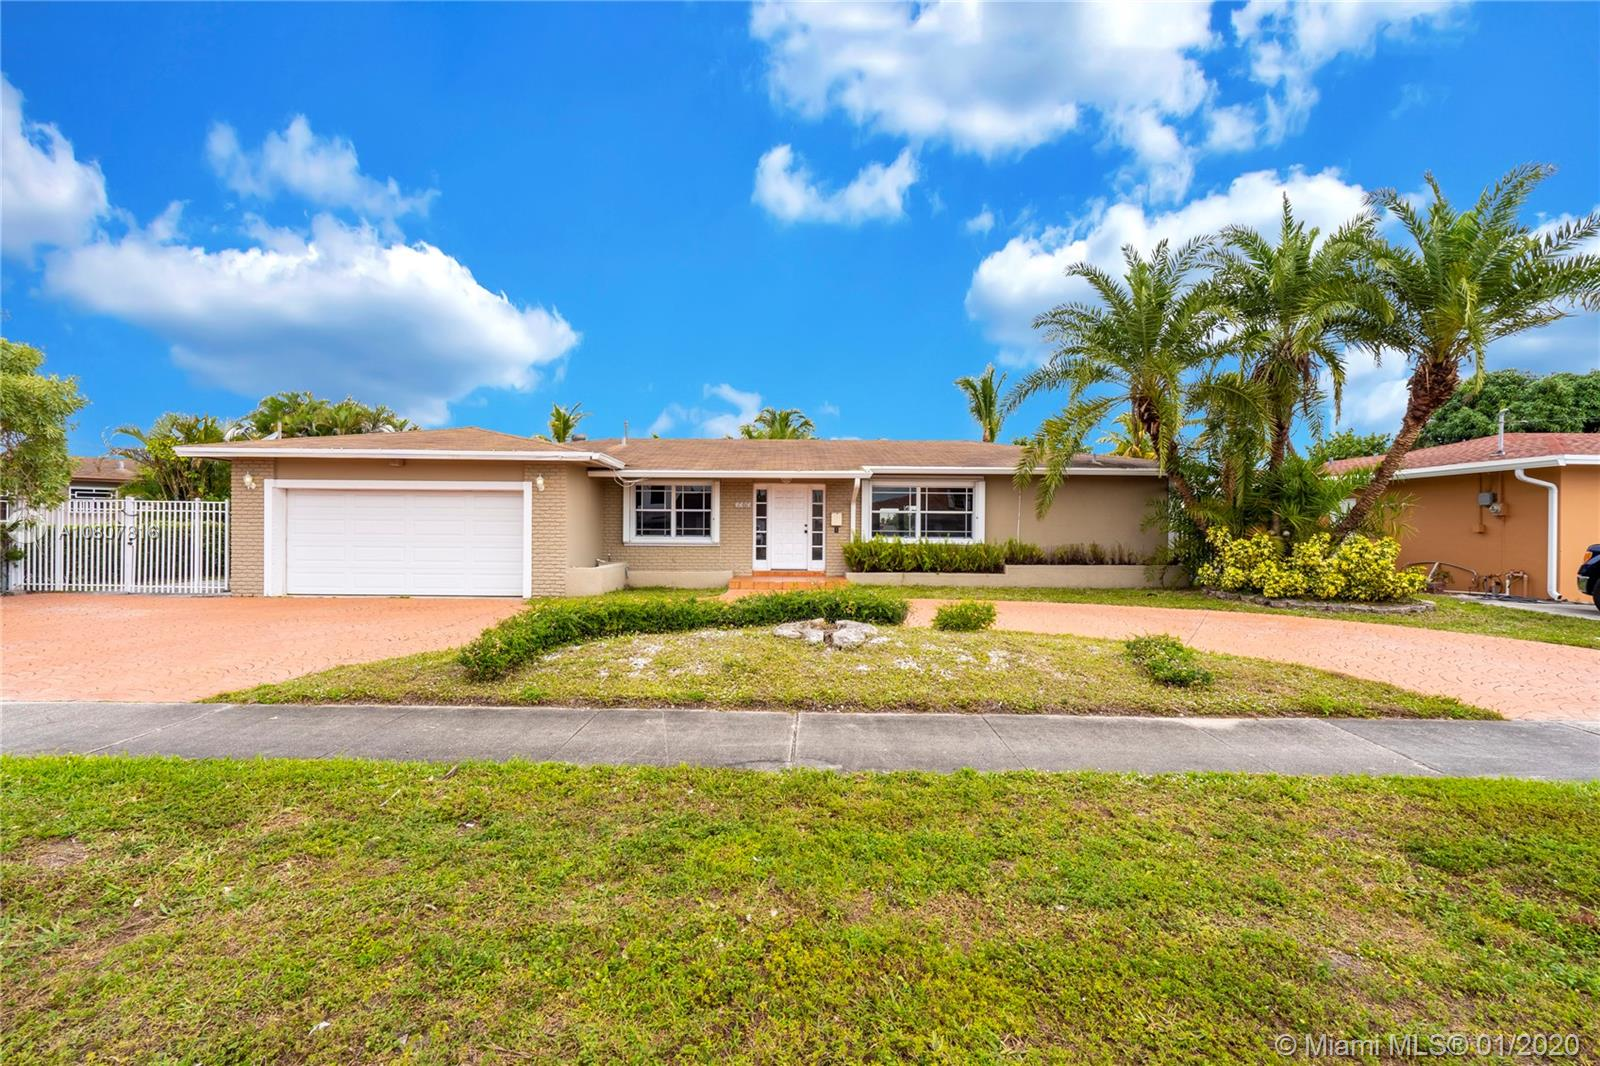 Beautiful single-family home in the desired area of West Hialeah, this property has 4 bedrooms, 2 bathrooms, a living room, a dining room, a family room, a garage for 2 cars and also a terrace with a wonderful and relaxing view of the lagoon. Not only that but it also has easy access to highways, and it is also close to shopping centers, restaurants and much more.